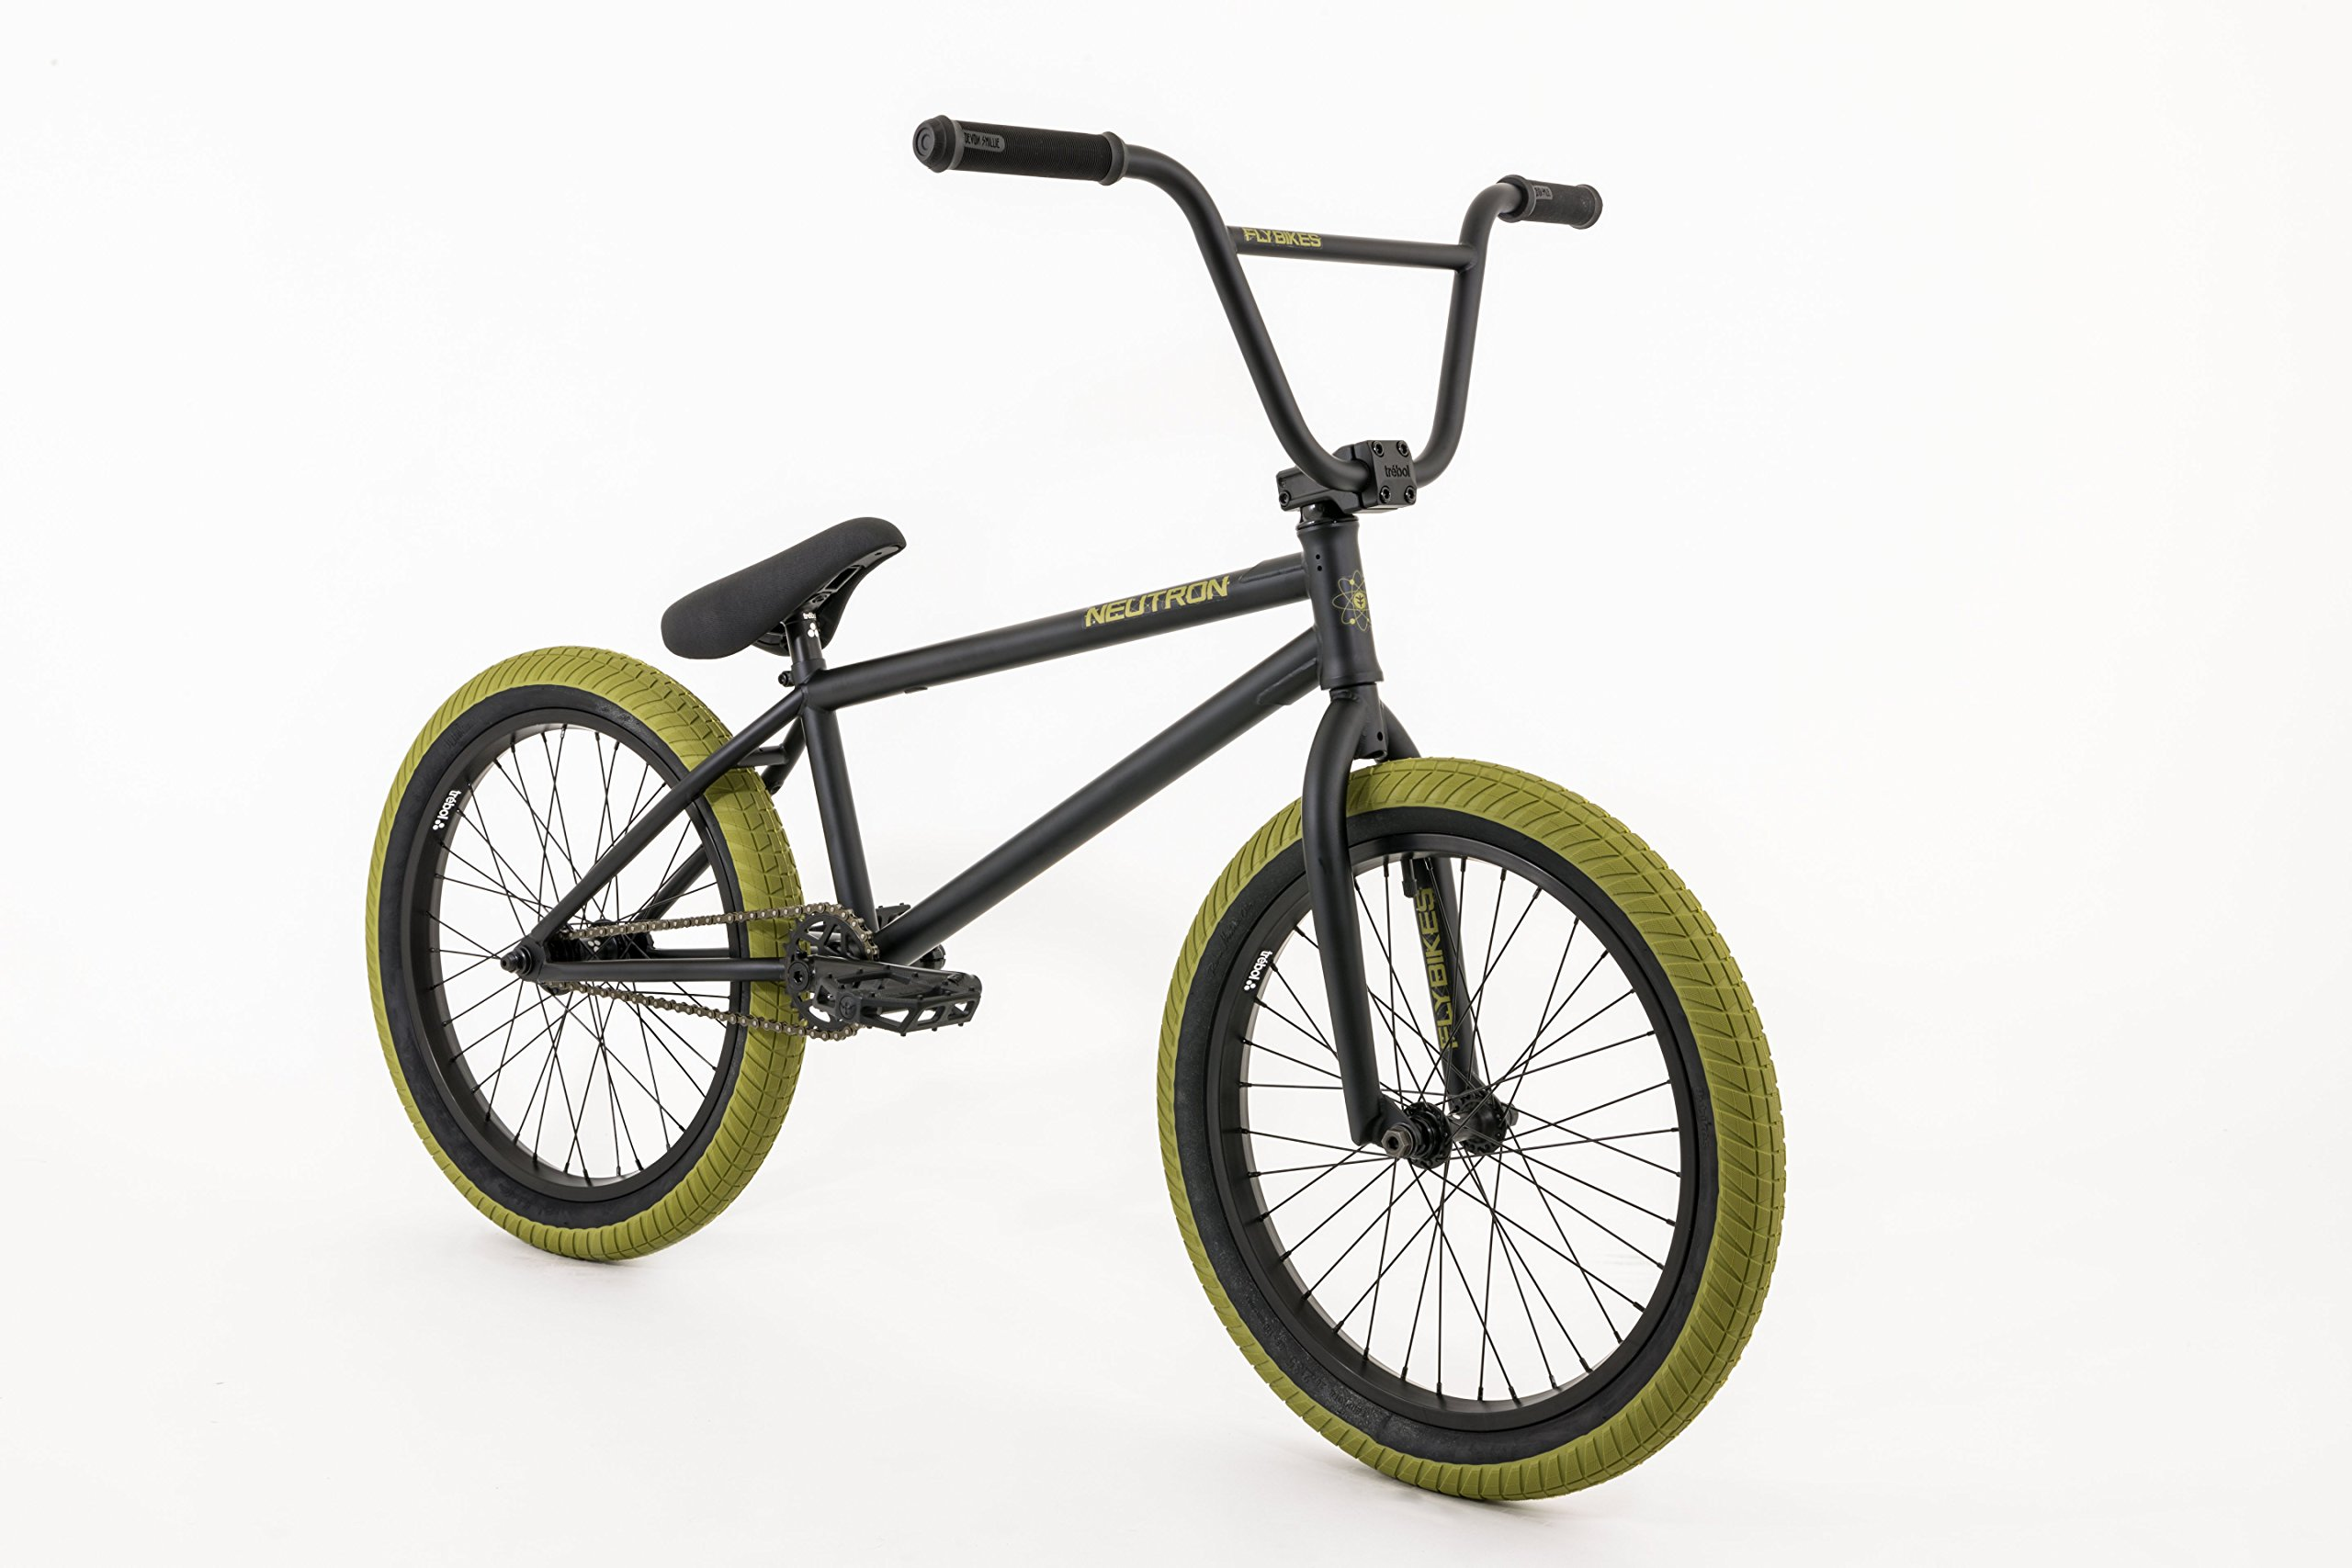 FLYBIKES Neutron - Bicicleta BMX, Color Negro: Amazon.es: Deportes ...